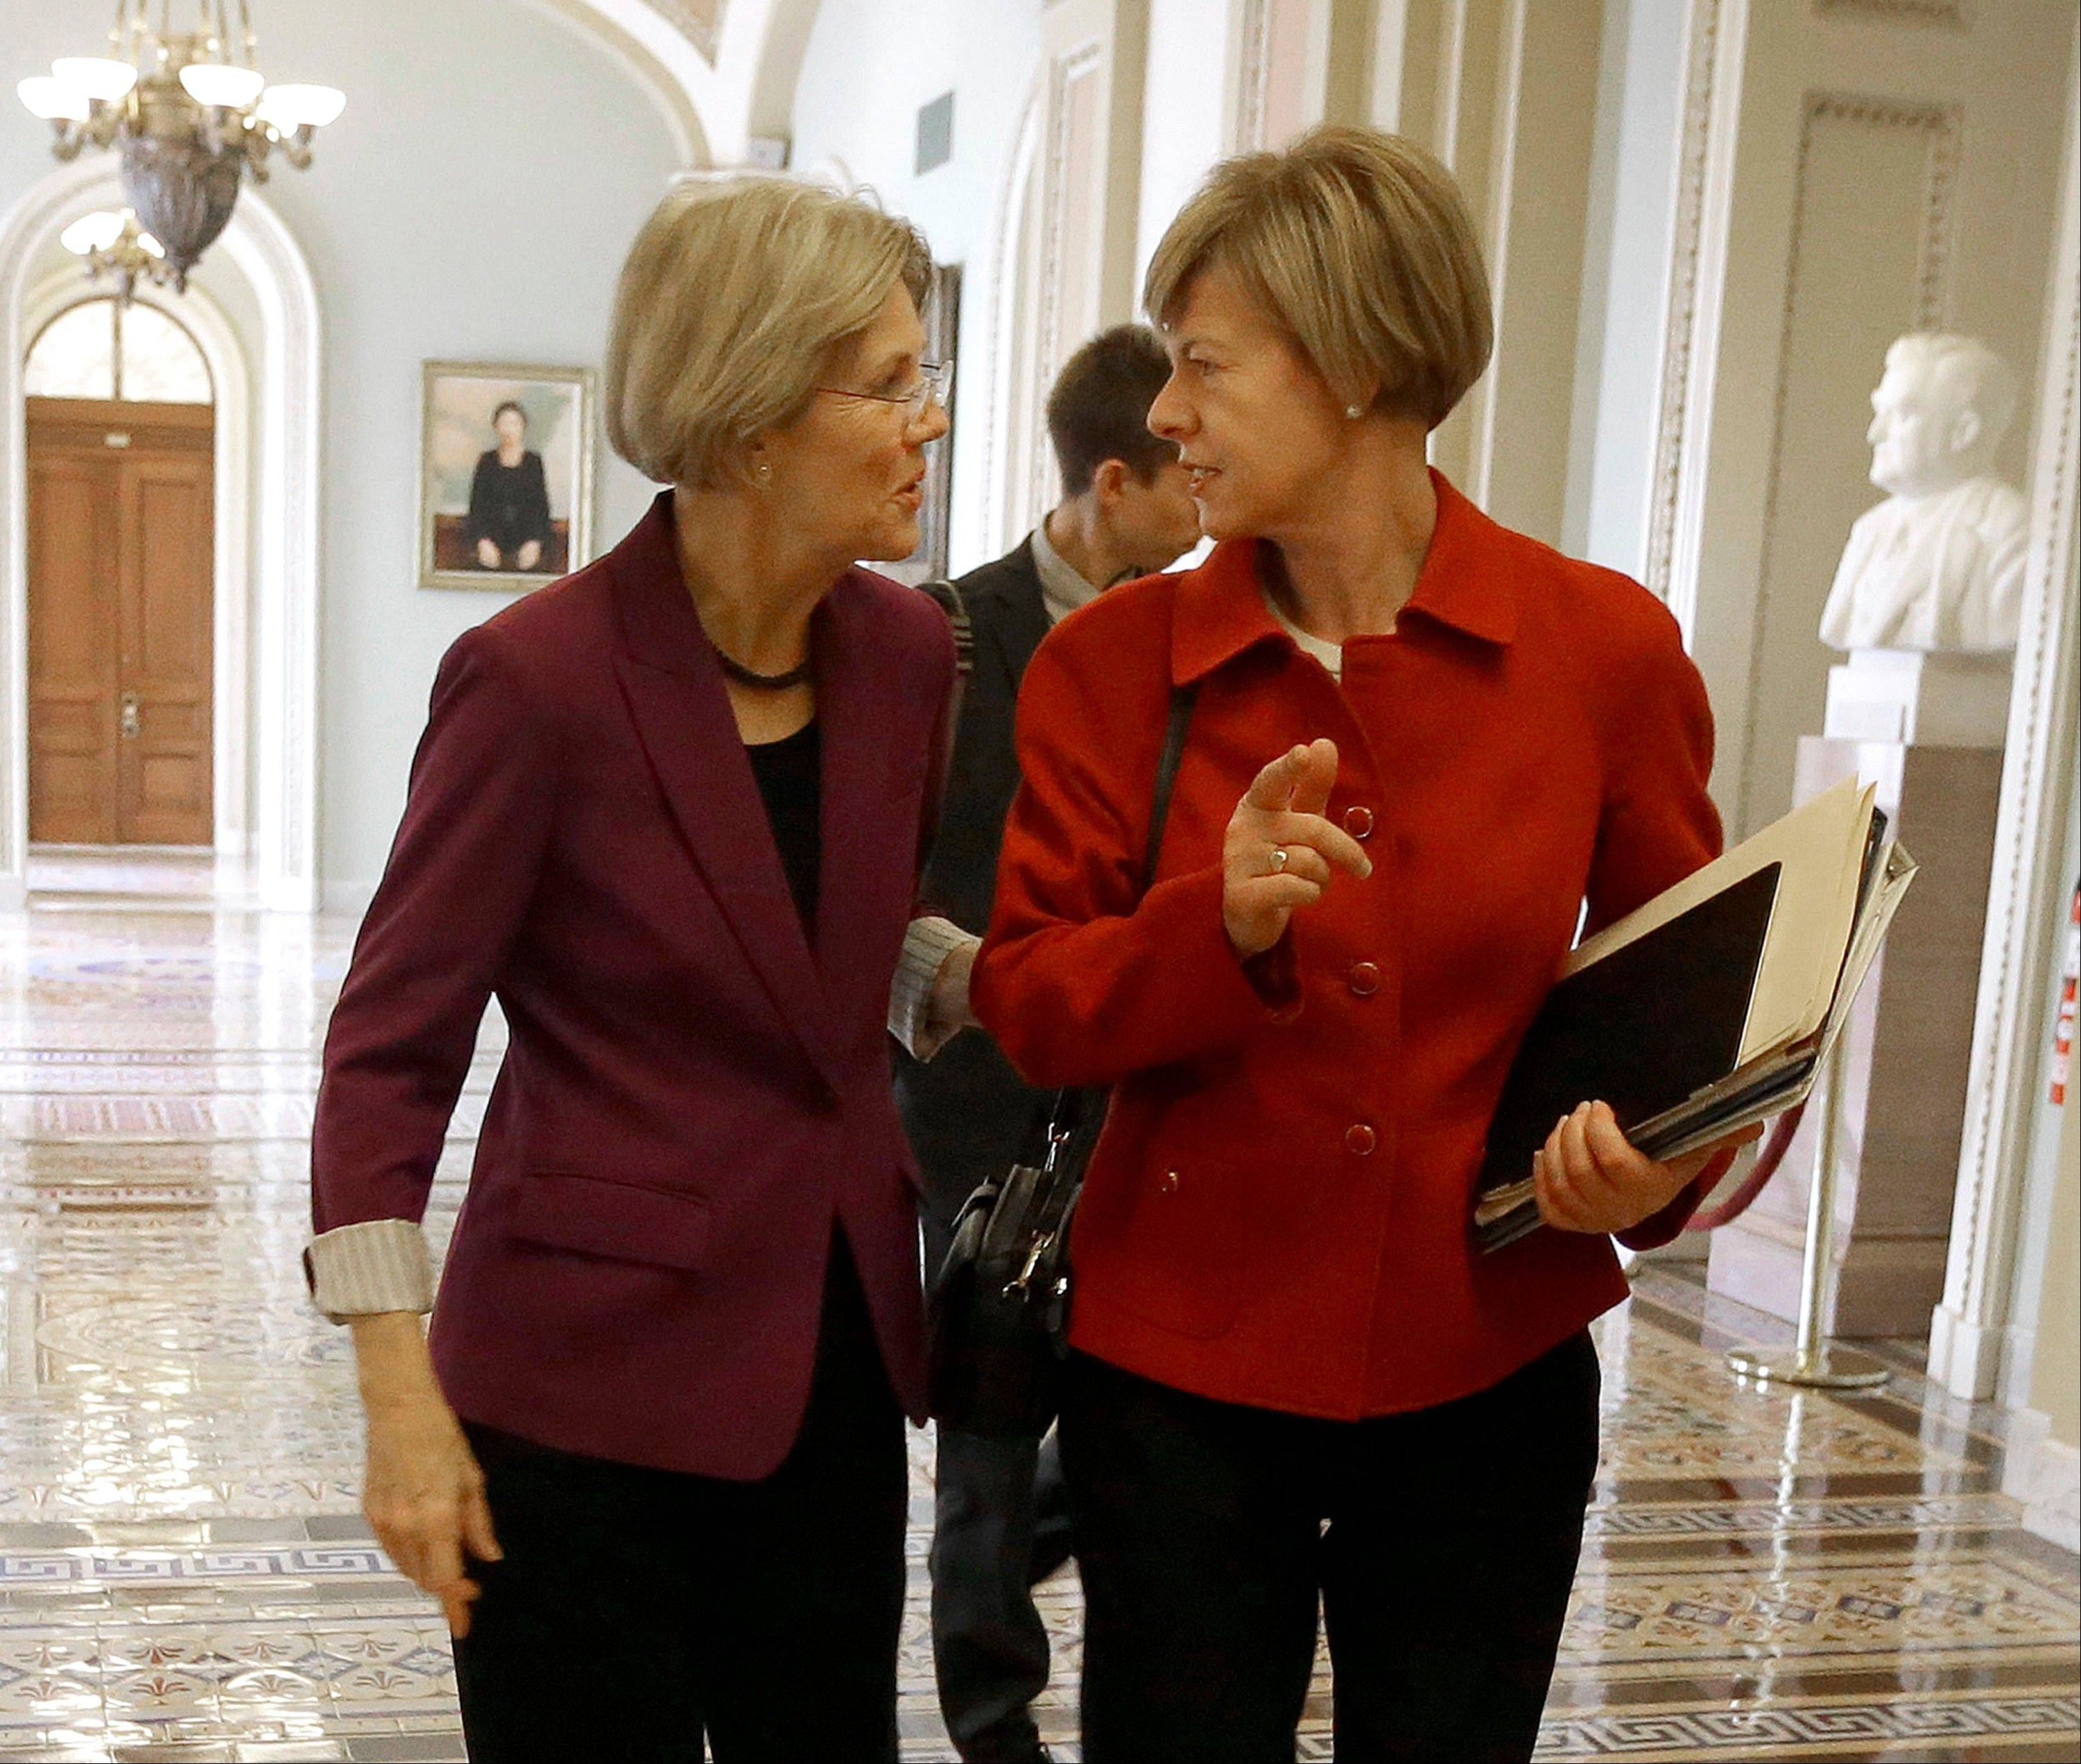 Sen.-elect Elizabeth Warren, a liberal Democrat from Massachusetts, left, and Sen.-elect Tammy Baldwin, a Wisconsin Democrat currently serving in the House, walk together on Capitol Hill in Washington earlier this month.